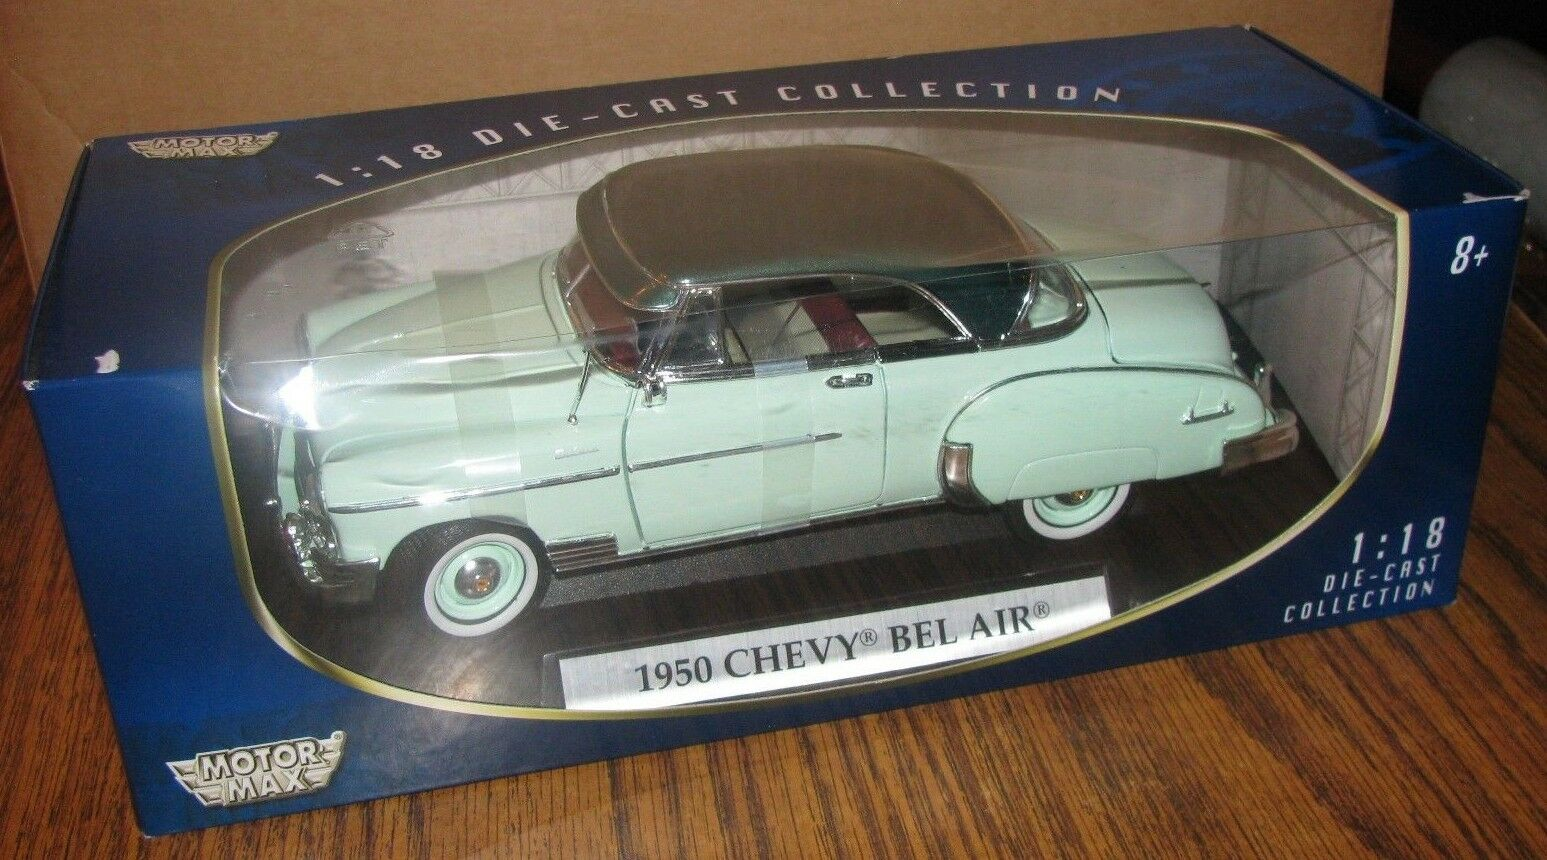 1950 Chevy Bel Air Car & Display Stand GREEN 1 18 Motor Max Die Cast Collection